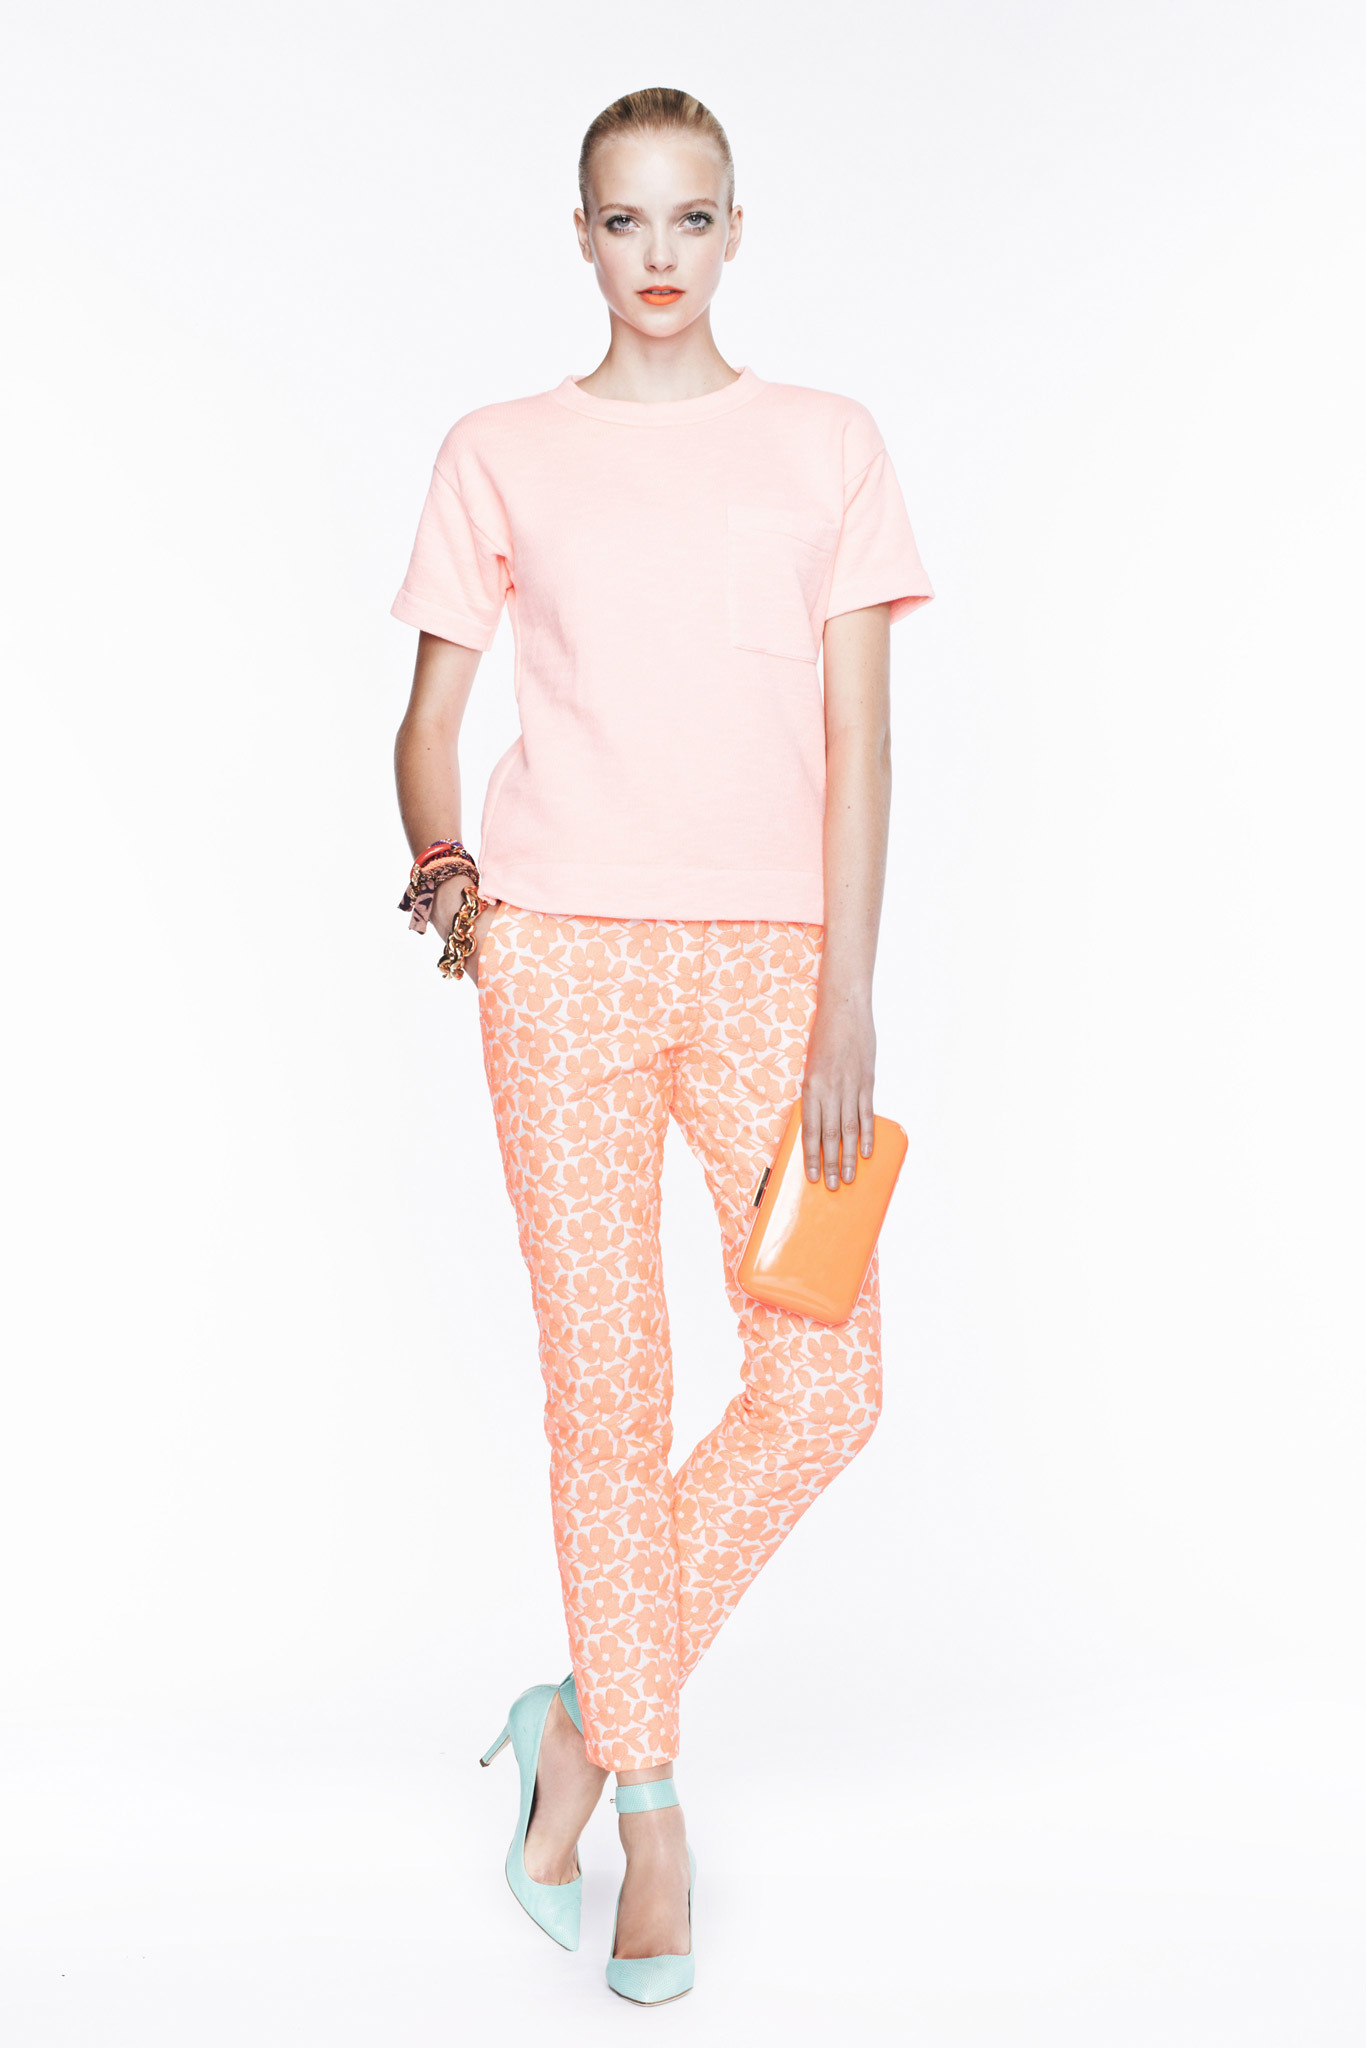 J. Crew Spring 2013 Collection New York Fashion Week